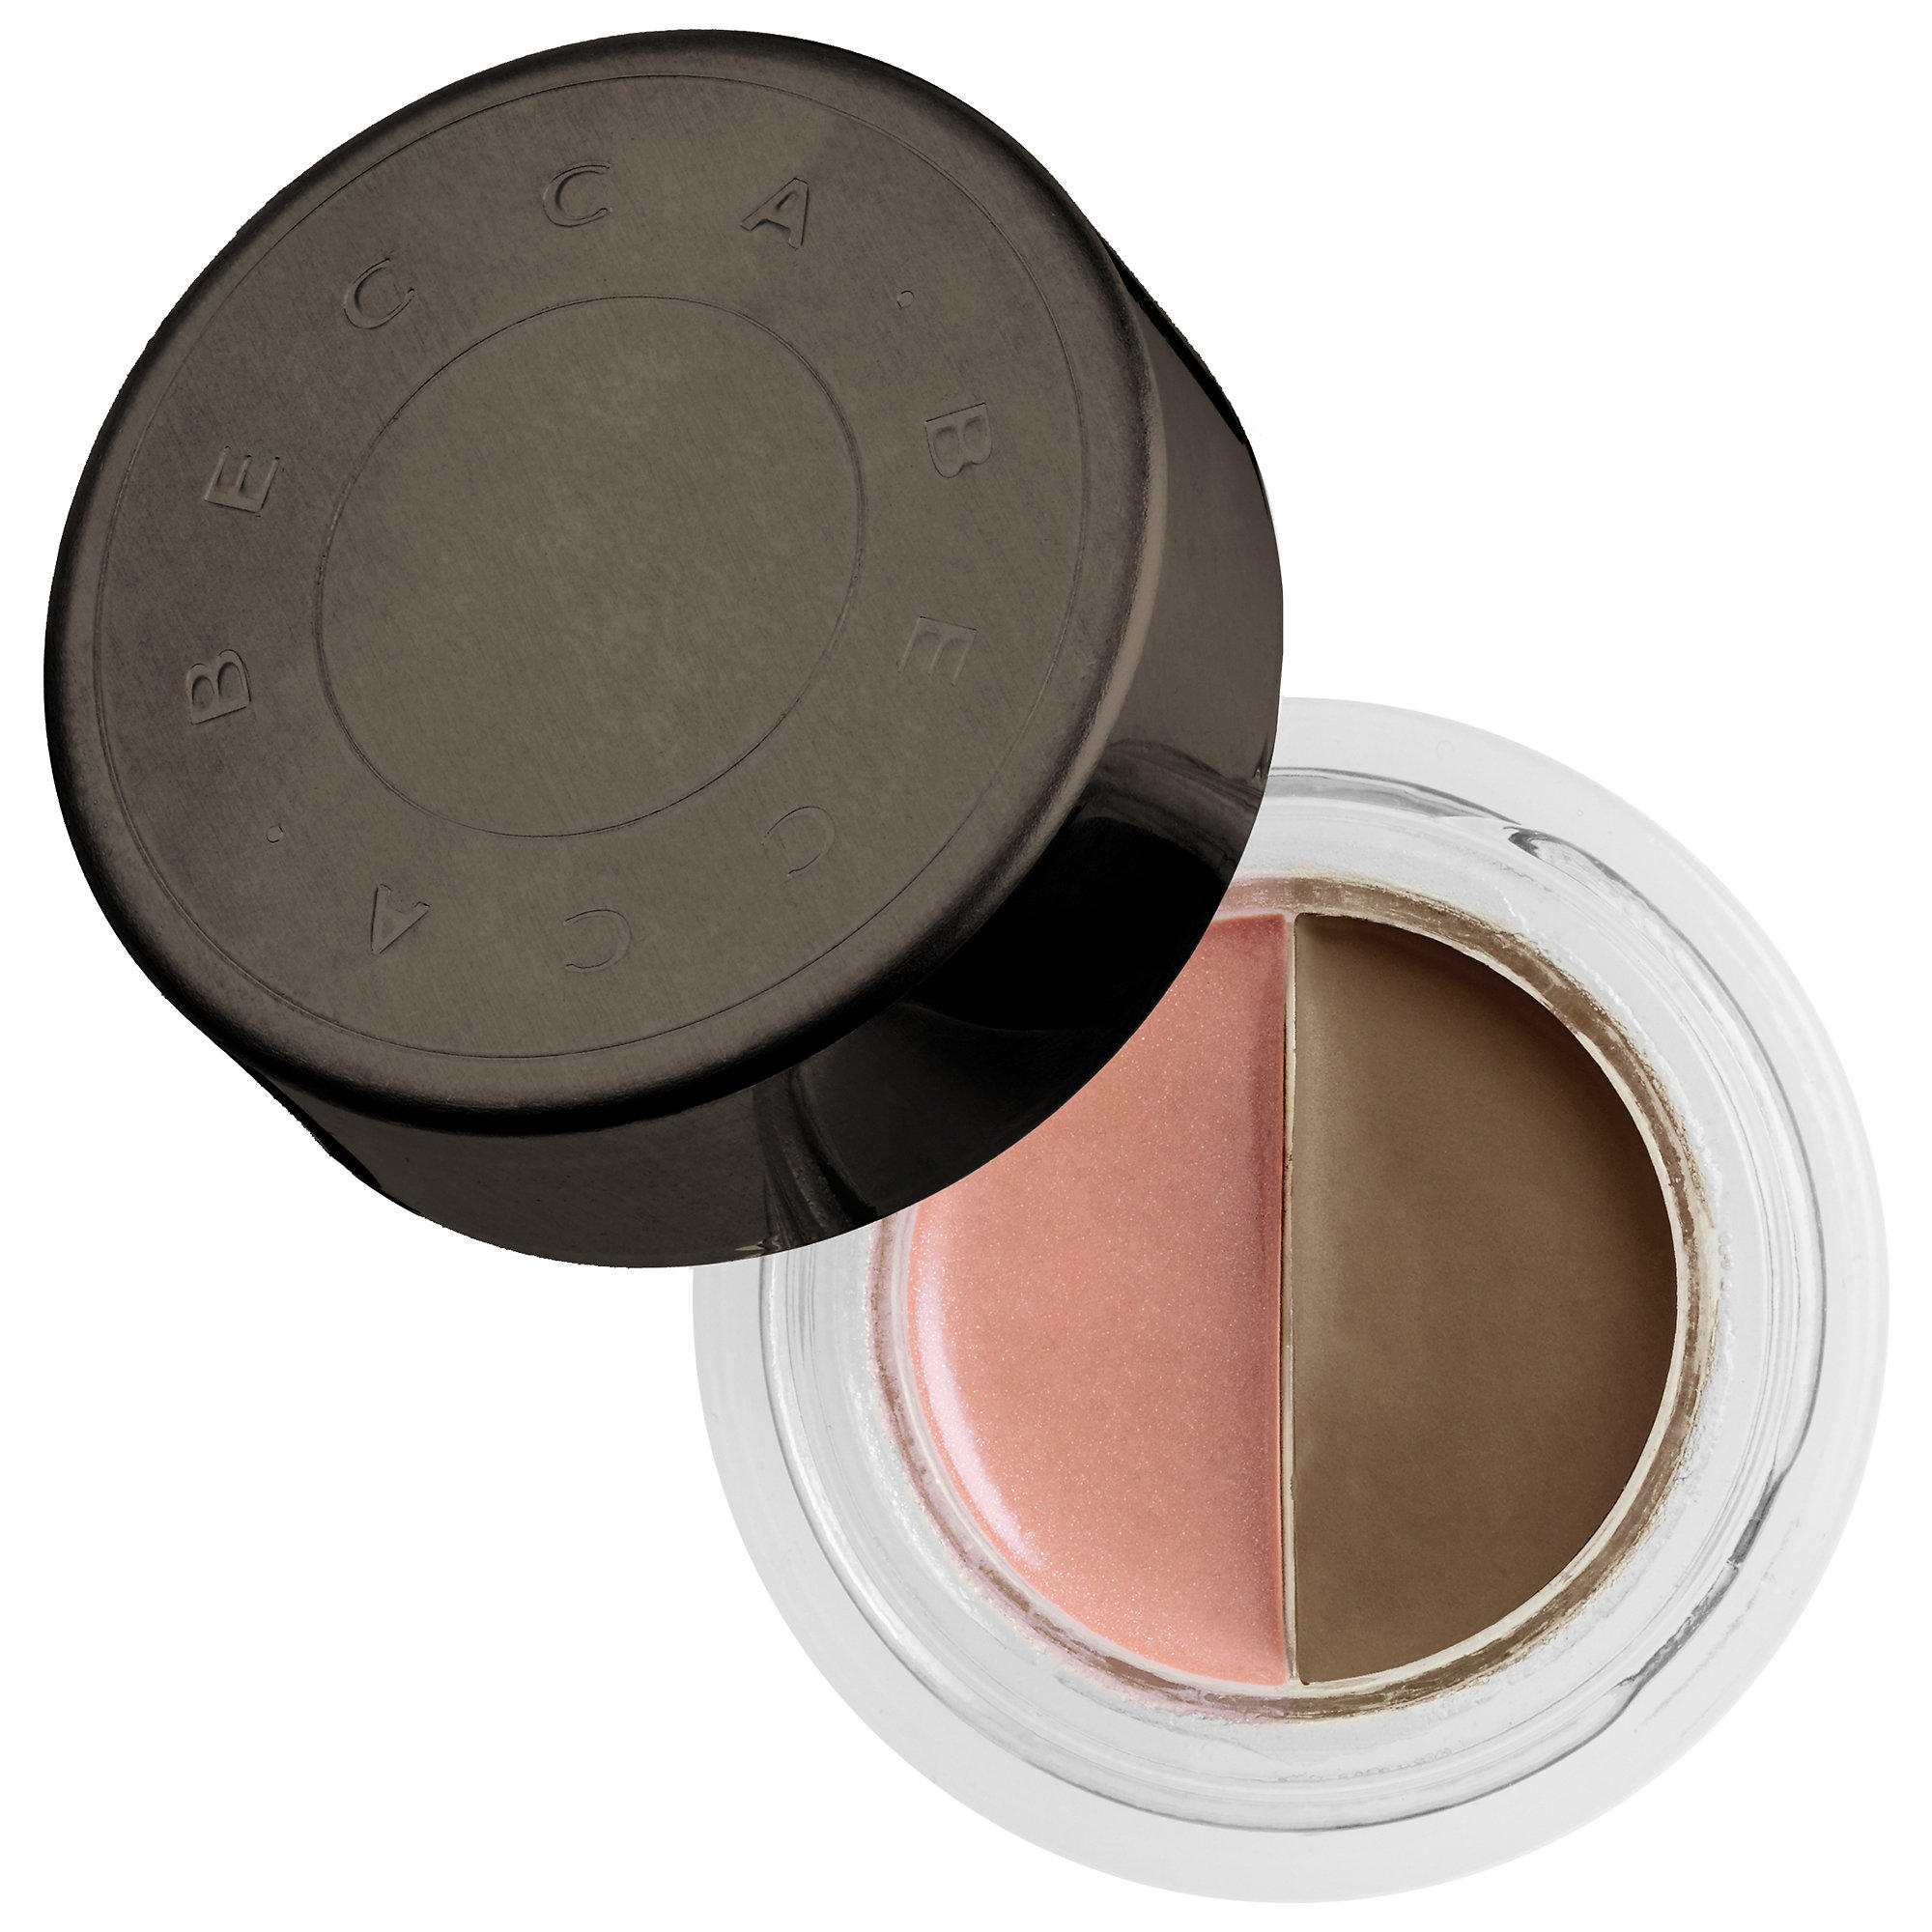 New ReleaseBecca launched New Shadow & Light Brow Contour Mousse